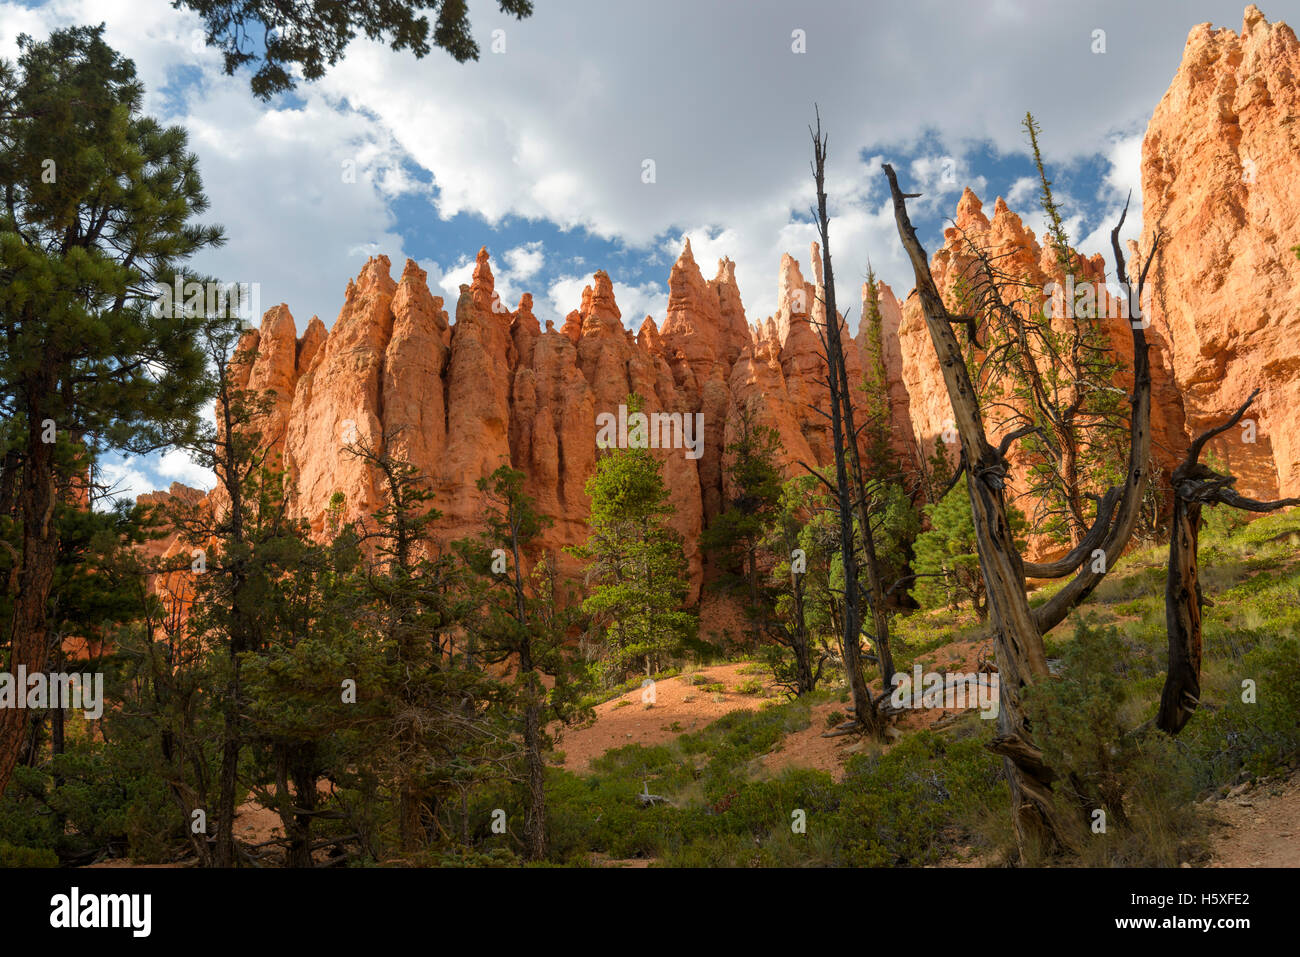 Scenic Views, Bryce Canyon National Park, located Utah, in the Southwestern United States. - Stock Image